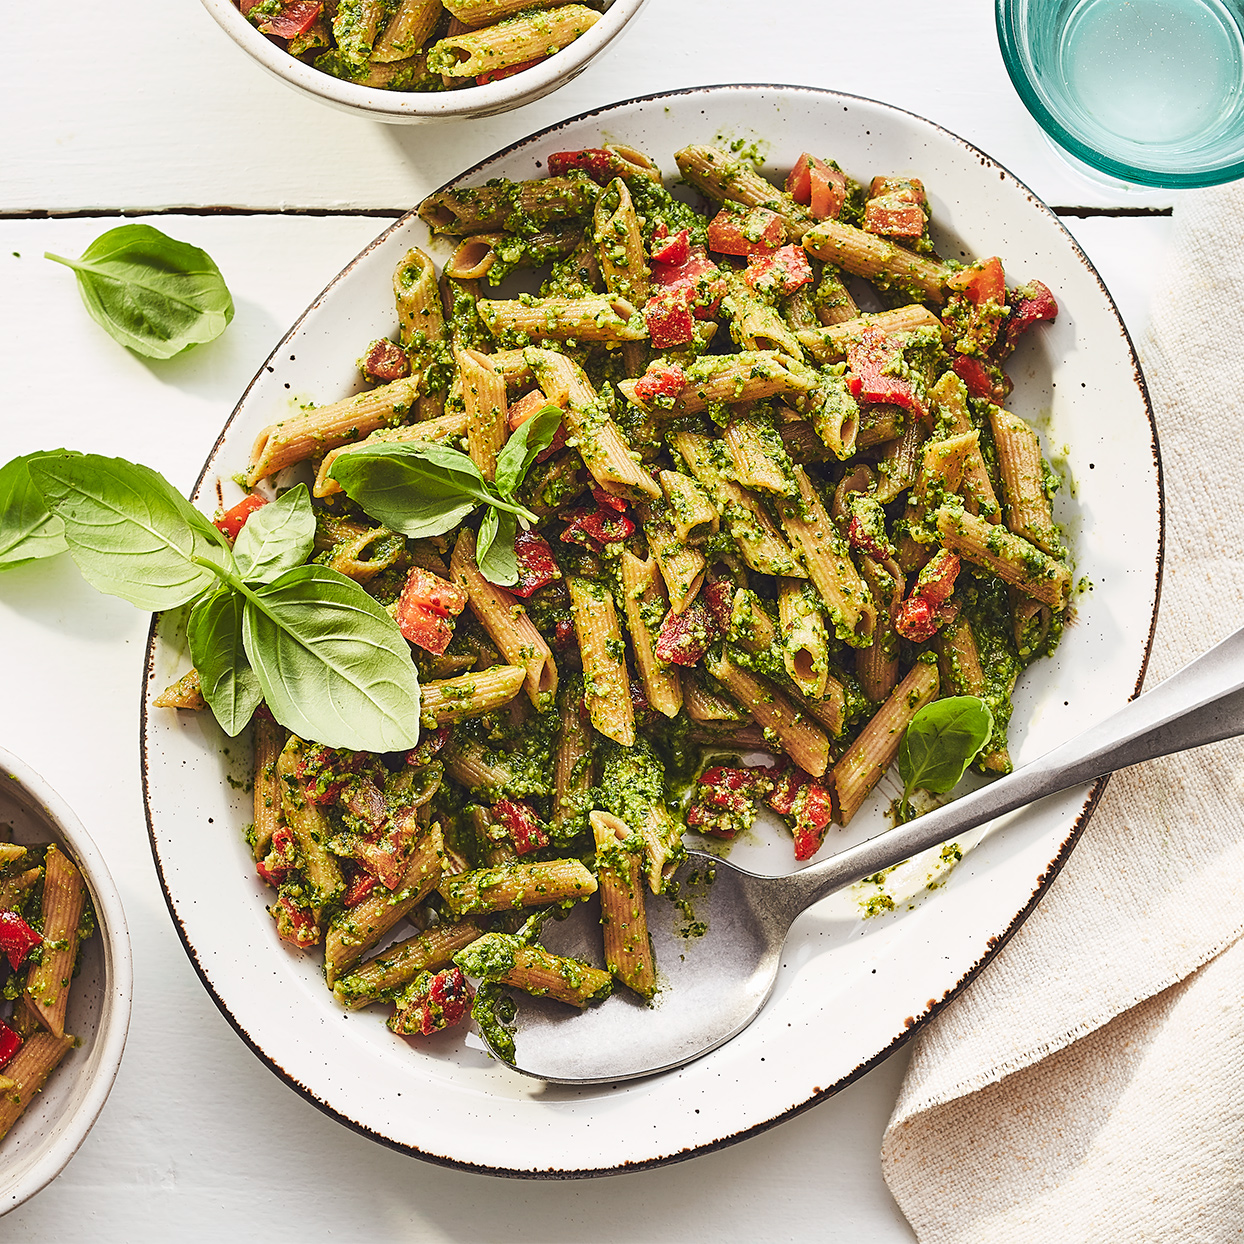 This cold pesto pasta salad will cool you off on a summer day. Fresh tomatoes and roasted red peppers add a pop of bright color and juiciness here, but any of your favorite pasta-salad veggies, like blanched broccoli and fresh bell peppers, would be delicious too. Source: EatingWell Magazine, July / August 2020